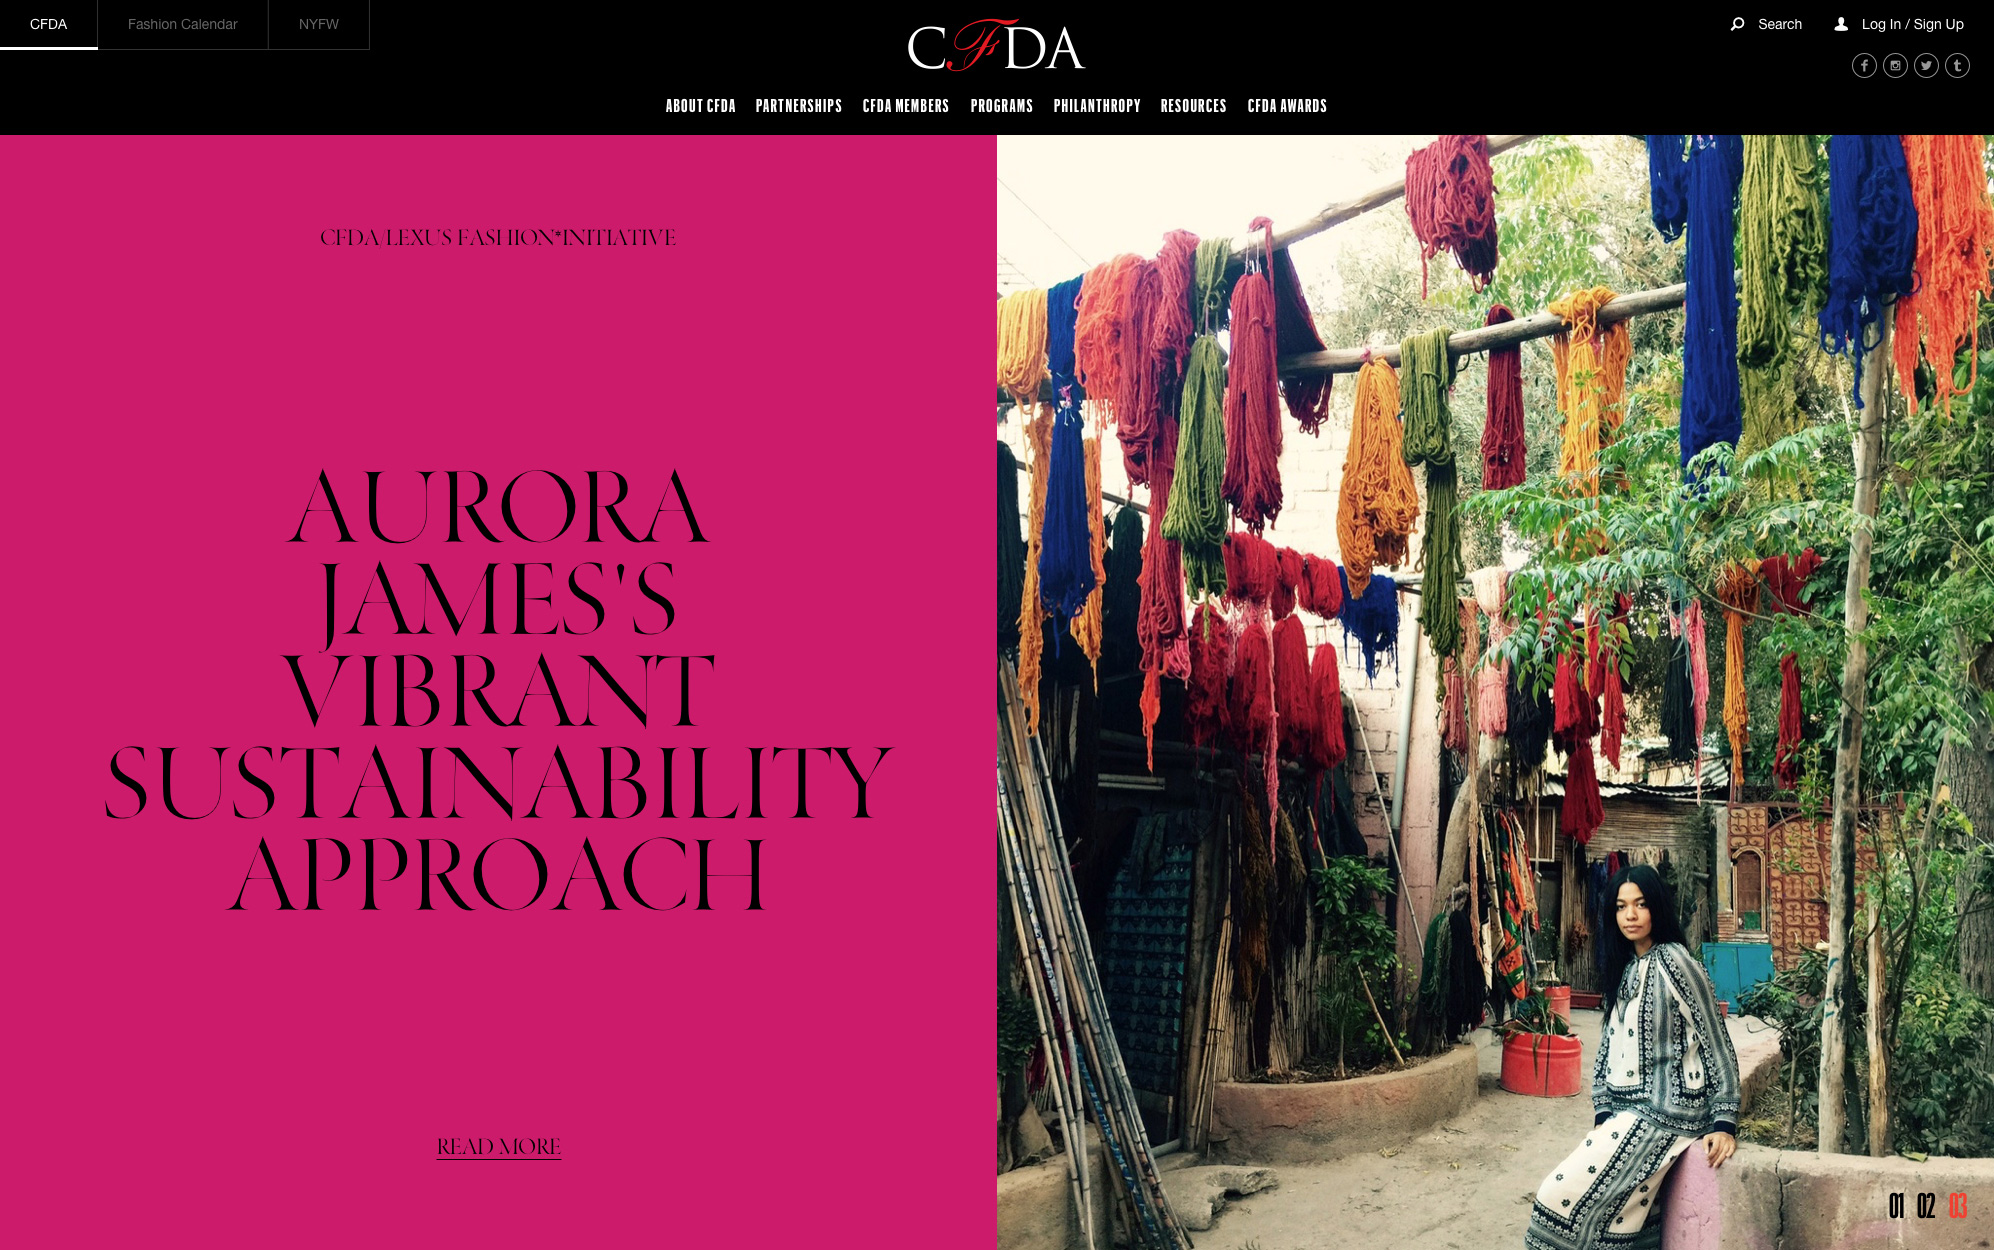 Cfda-home1